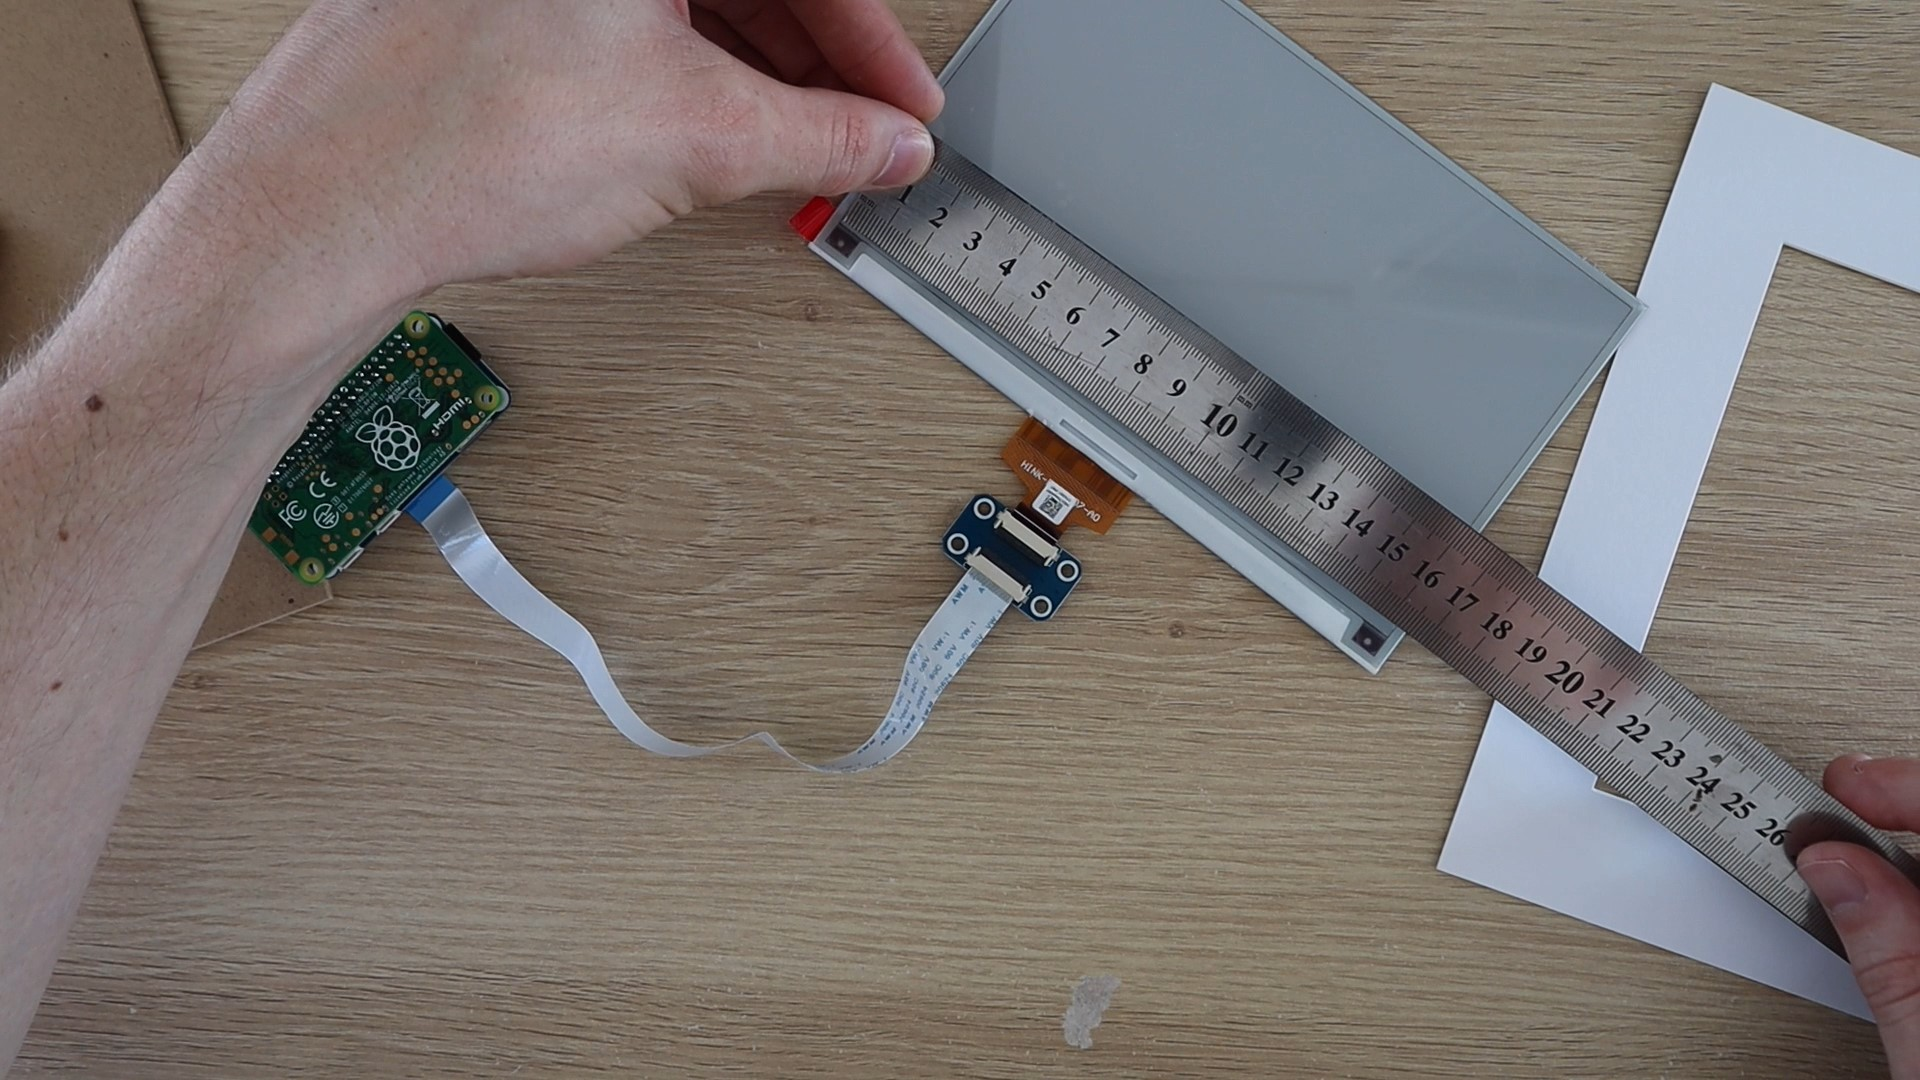 Measure The E-Paper Display To Cut The Card Bigger